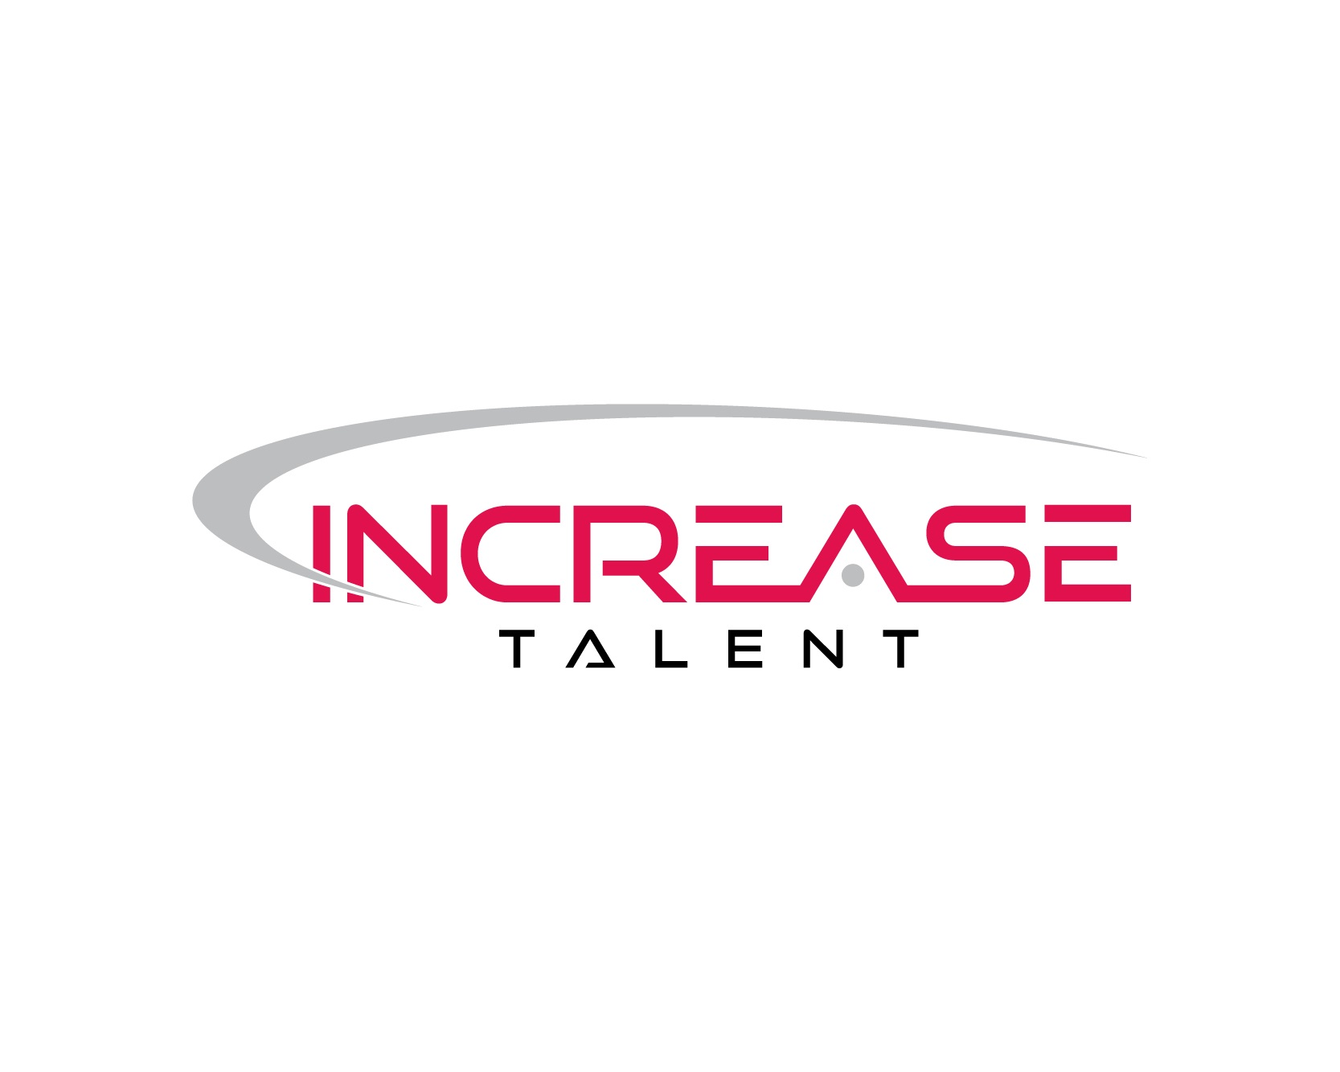 Increase talent